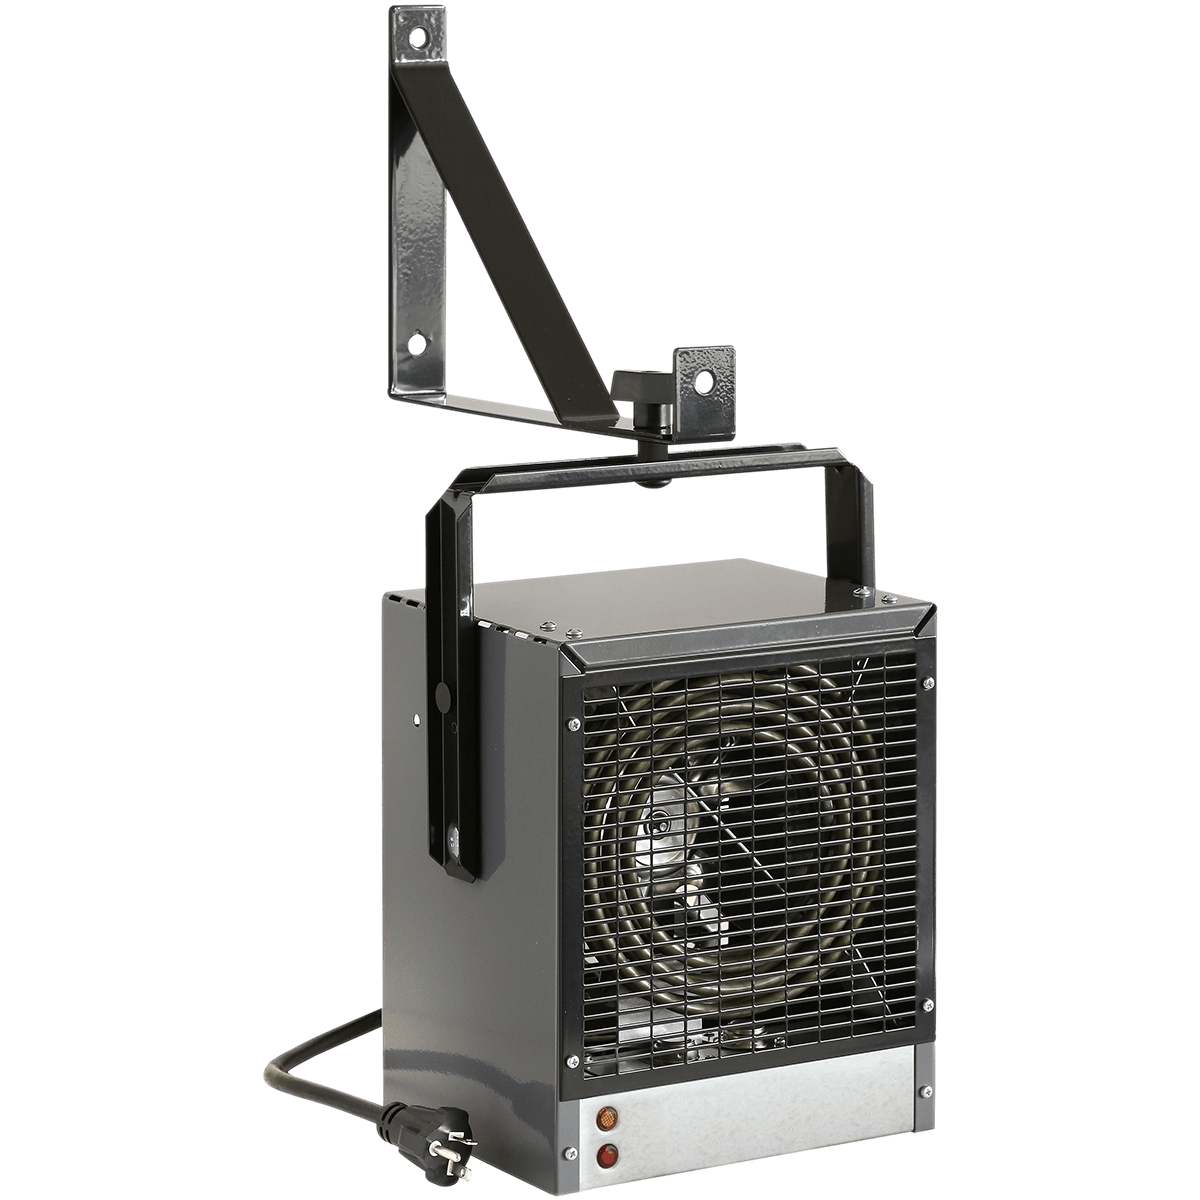 Dimplex Electric Garage and Workshop Heater Model: DGWH4031G